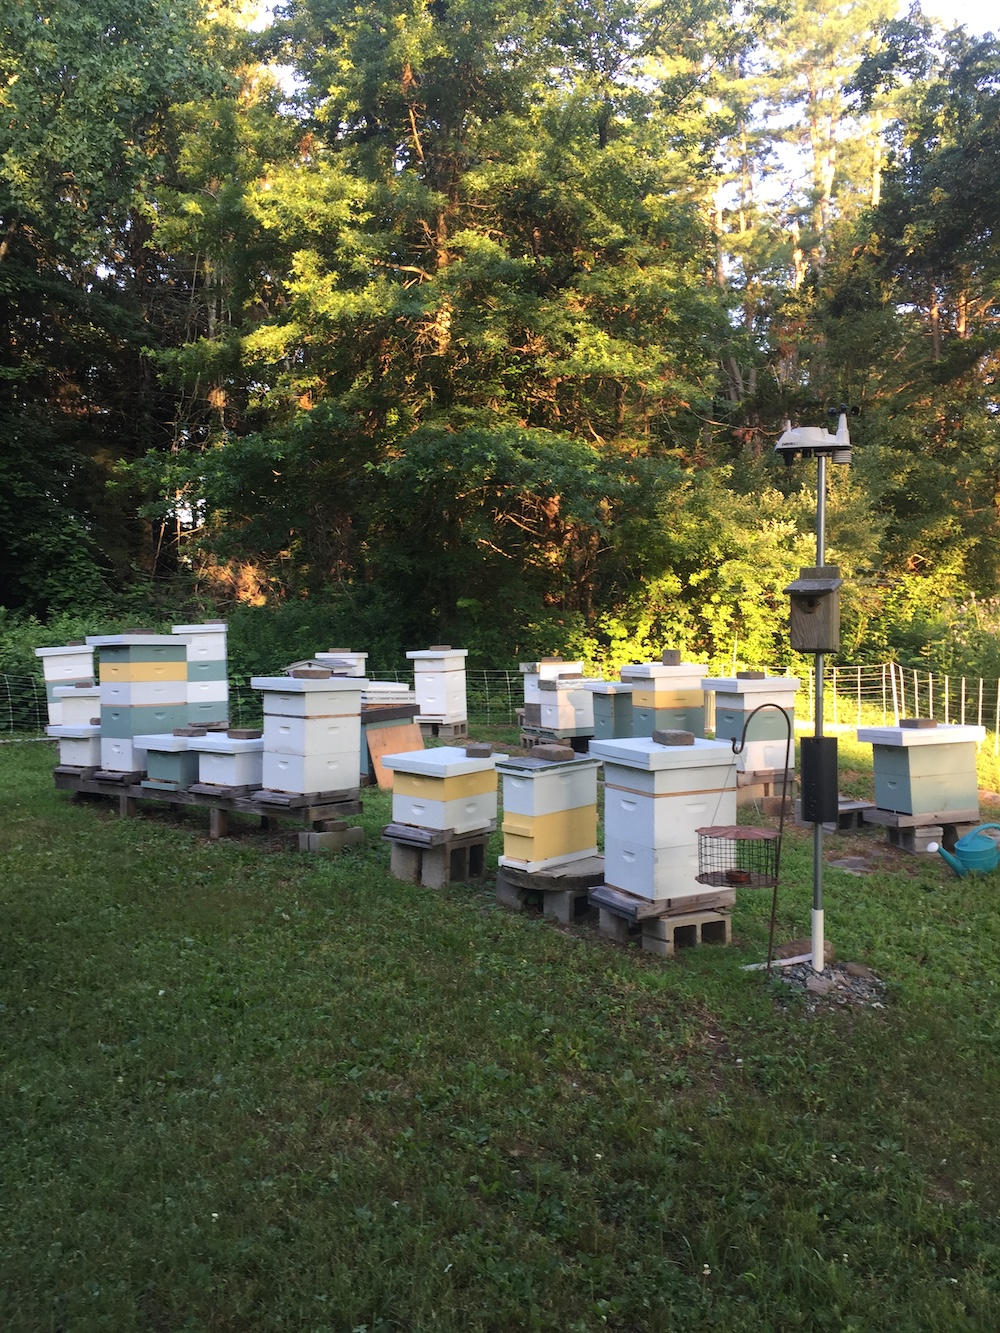 wing-dance-apiary-hives